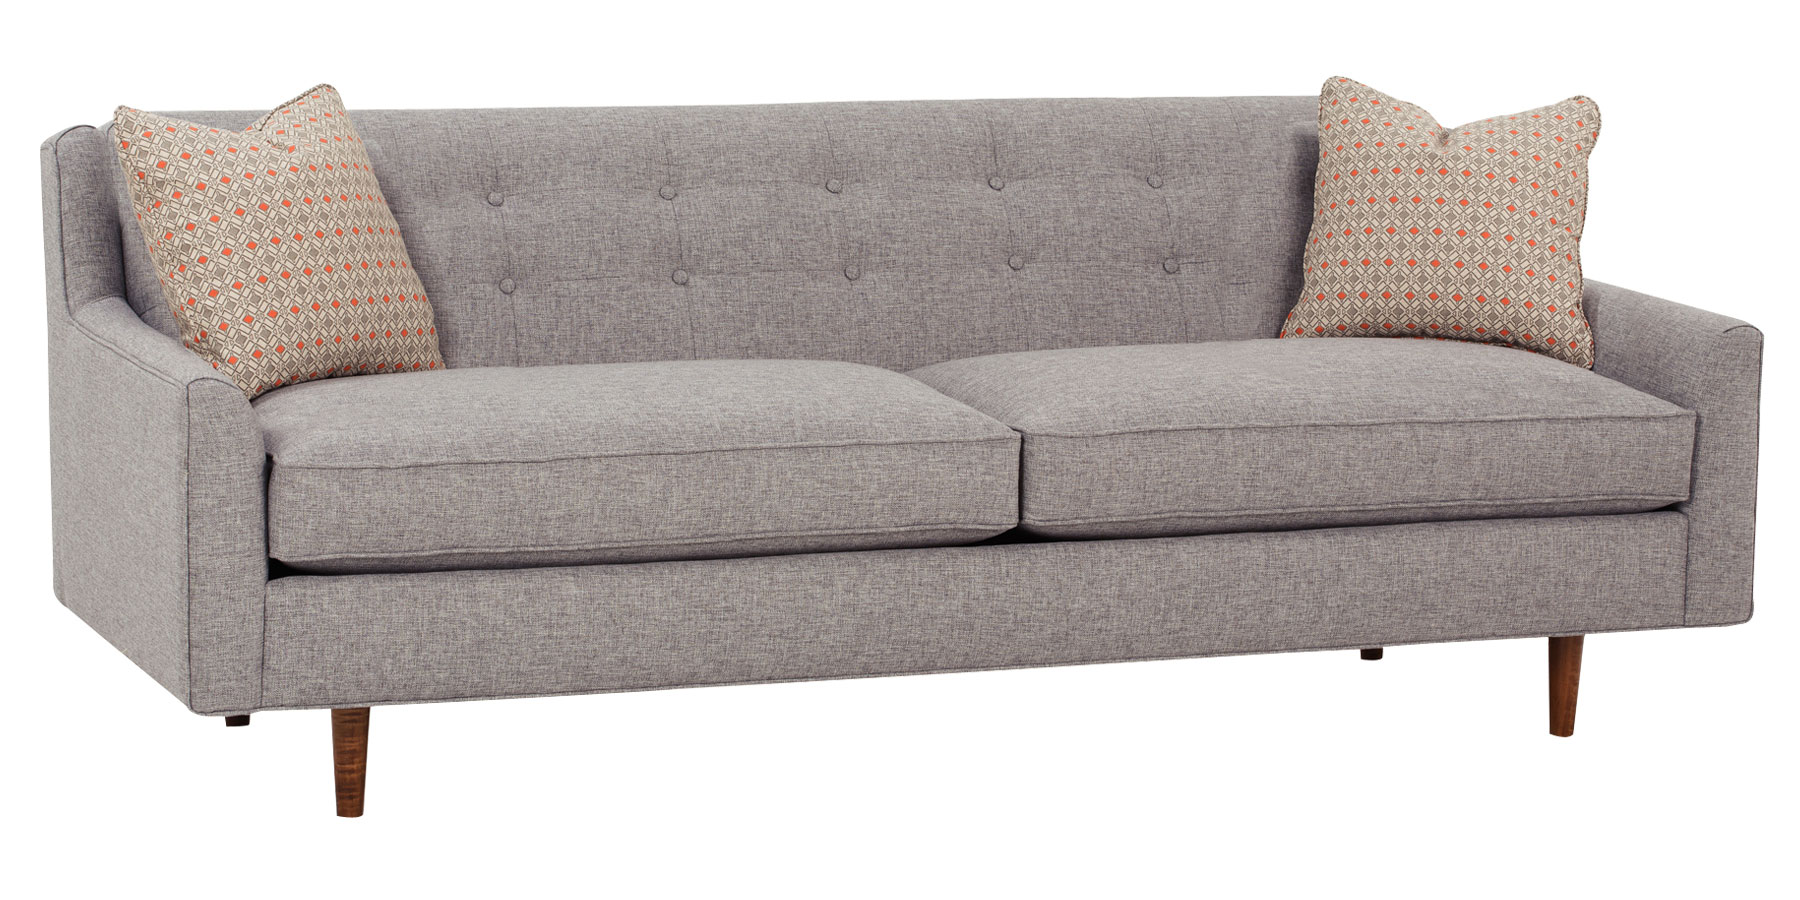 Mid century fabric sofa group with inset legs club furniture for Contemporary couches